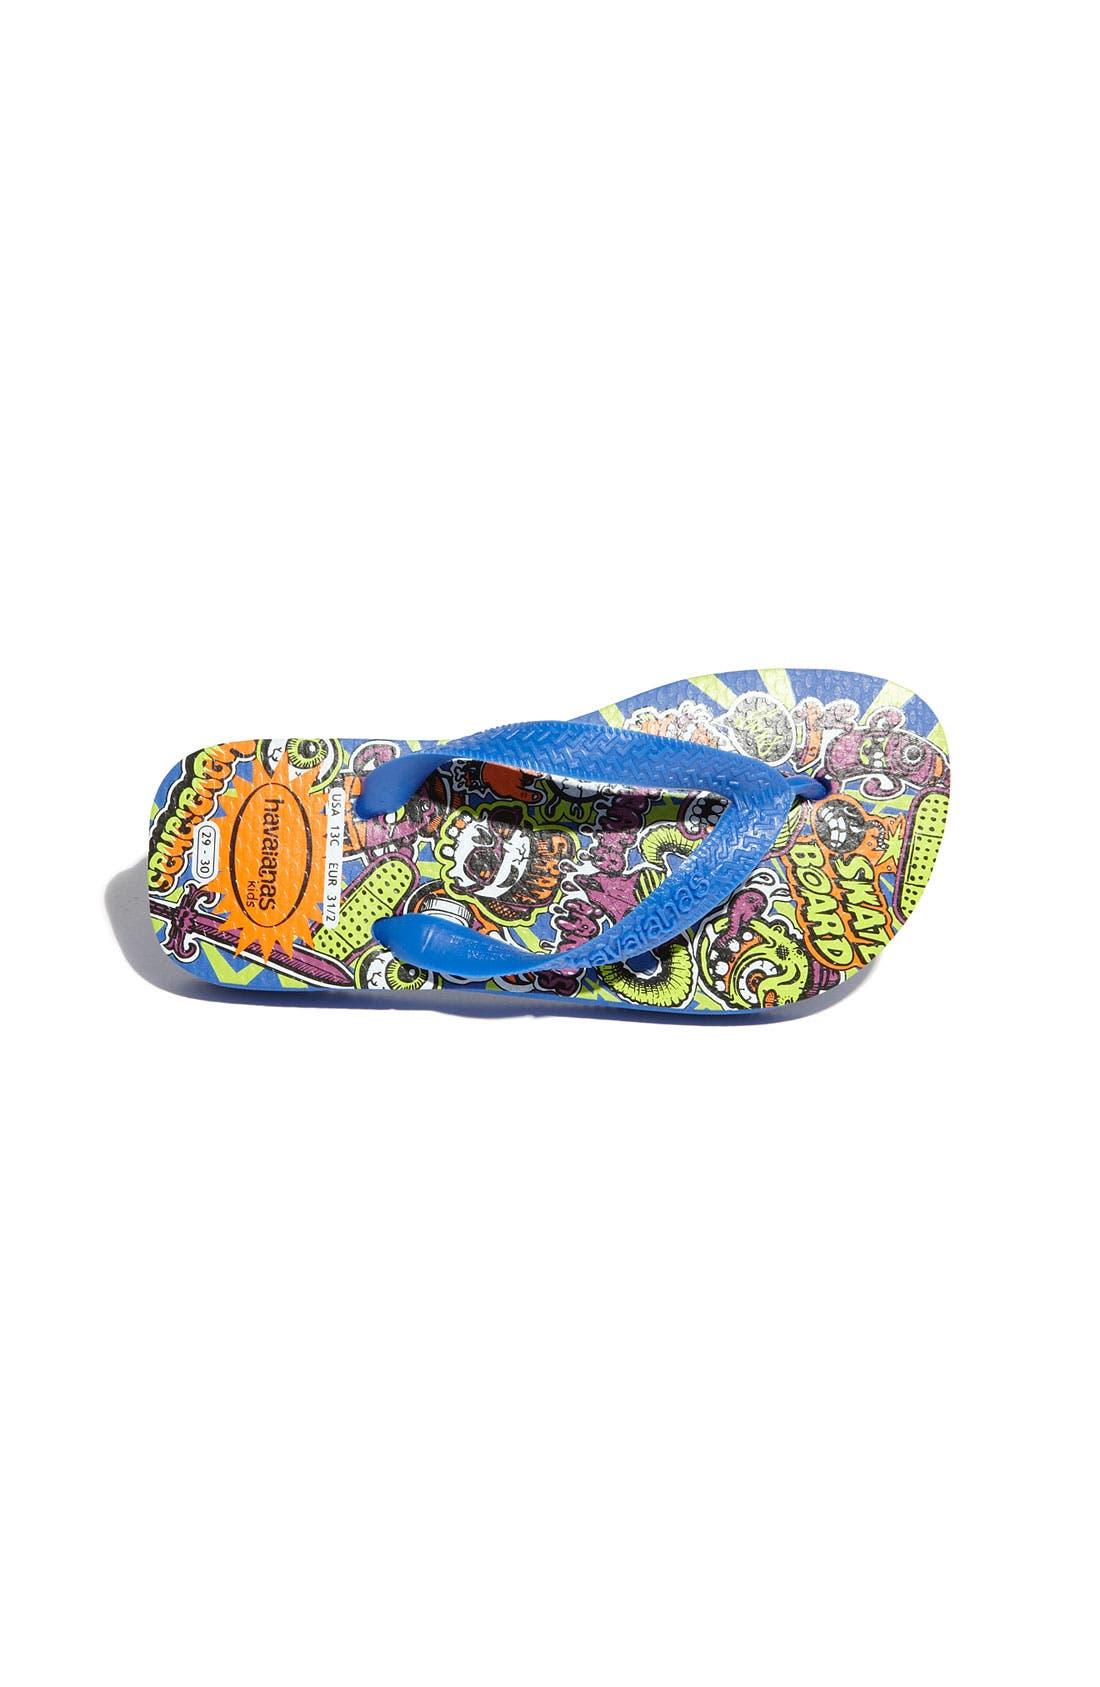 Alternate Image 3  - Havaianas 'Skate' Sandal (Toddler & Little Kid)